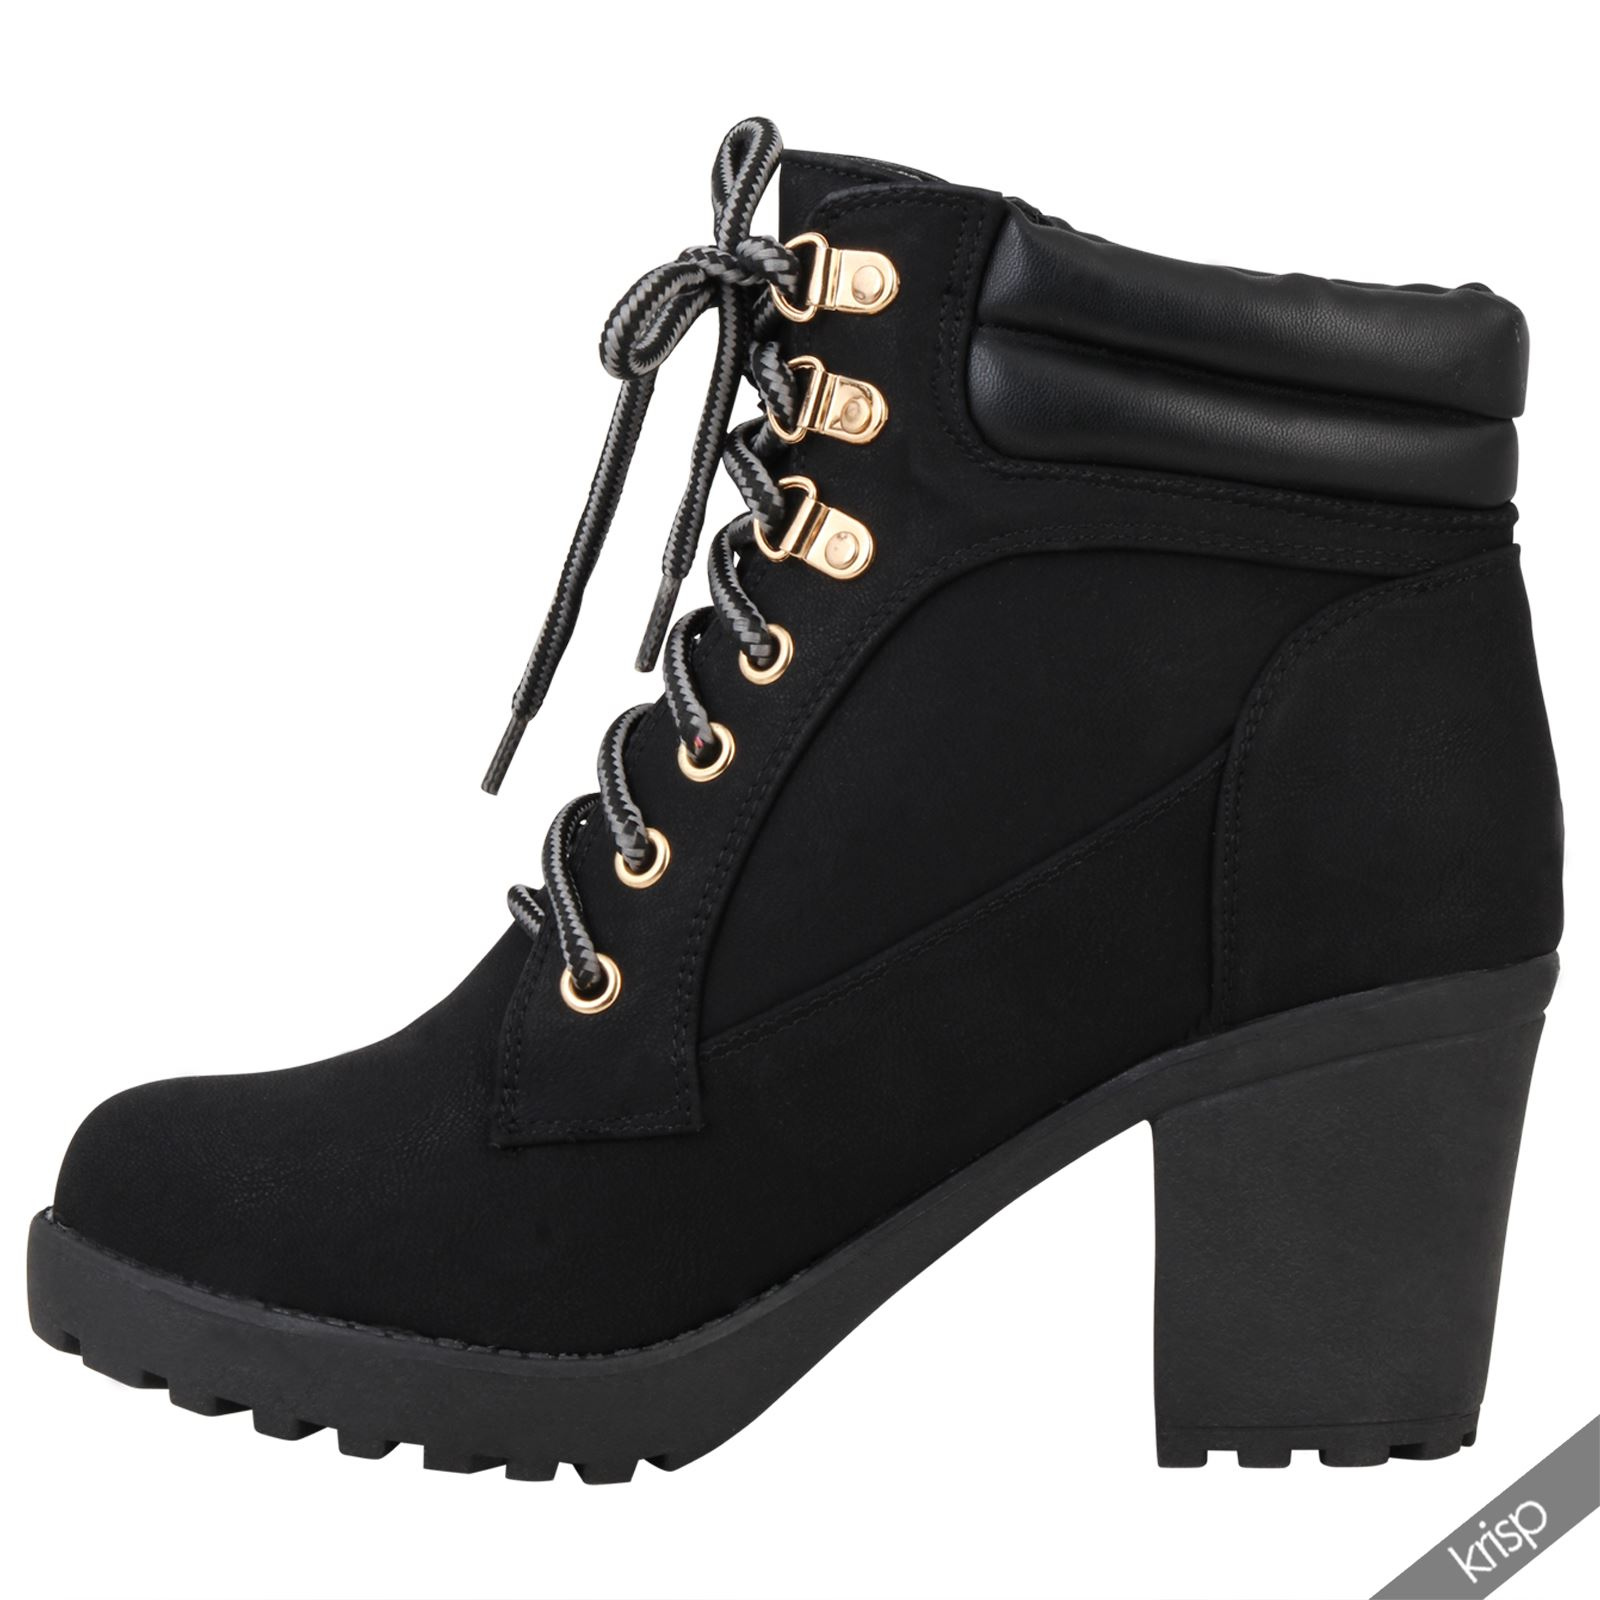 2987fce7564a Womens Chunky Block High Heel Worker Ankle Boots Cleated Casual .